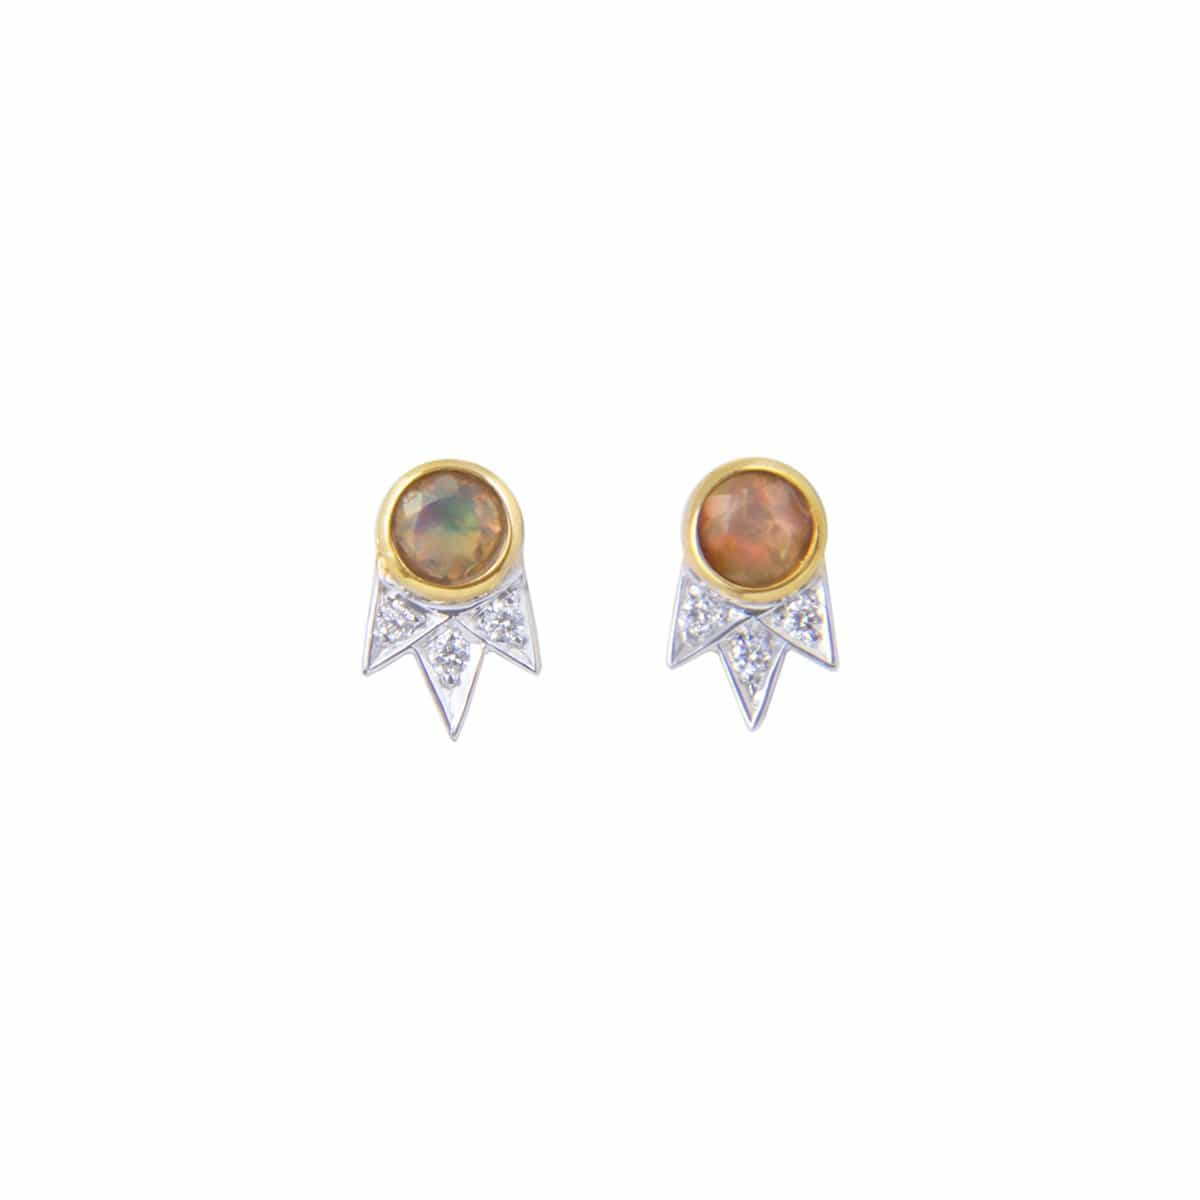 Faceted Opal Diamond Small Shooting Star Stud Earrings - Curated Los Angeles